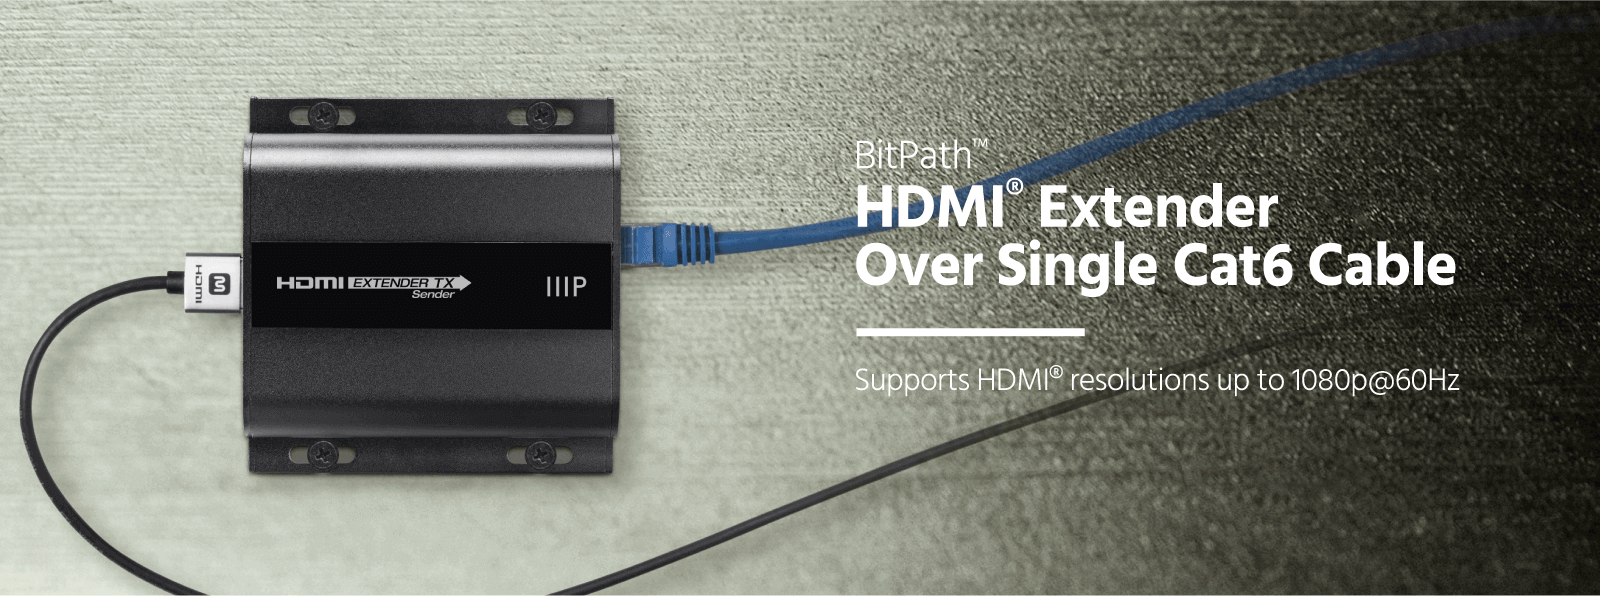 HDMI Extender Over Single Cat6 Cable